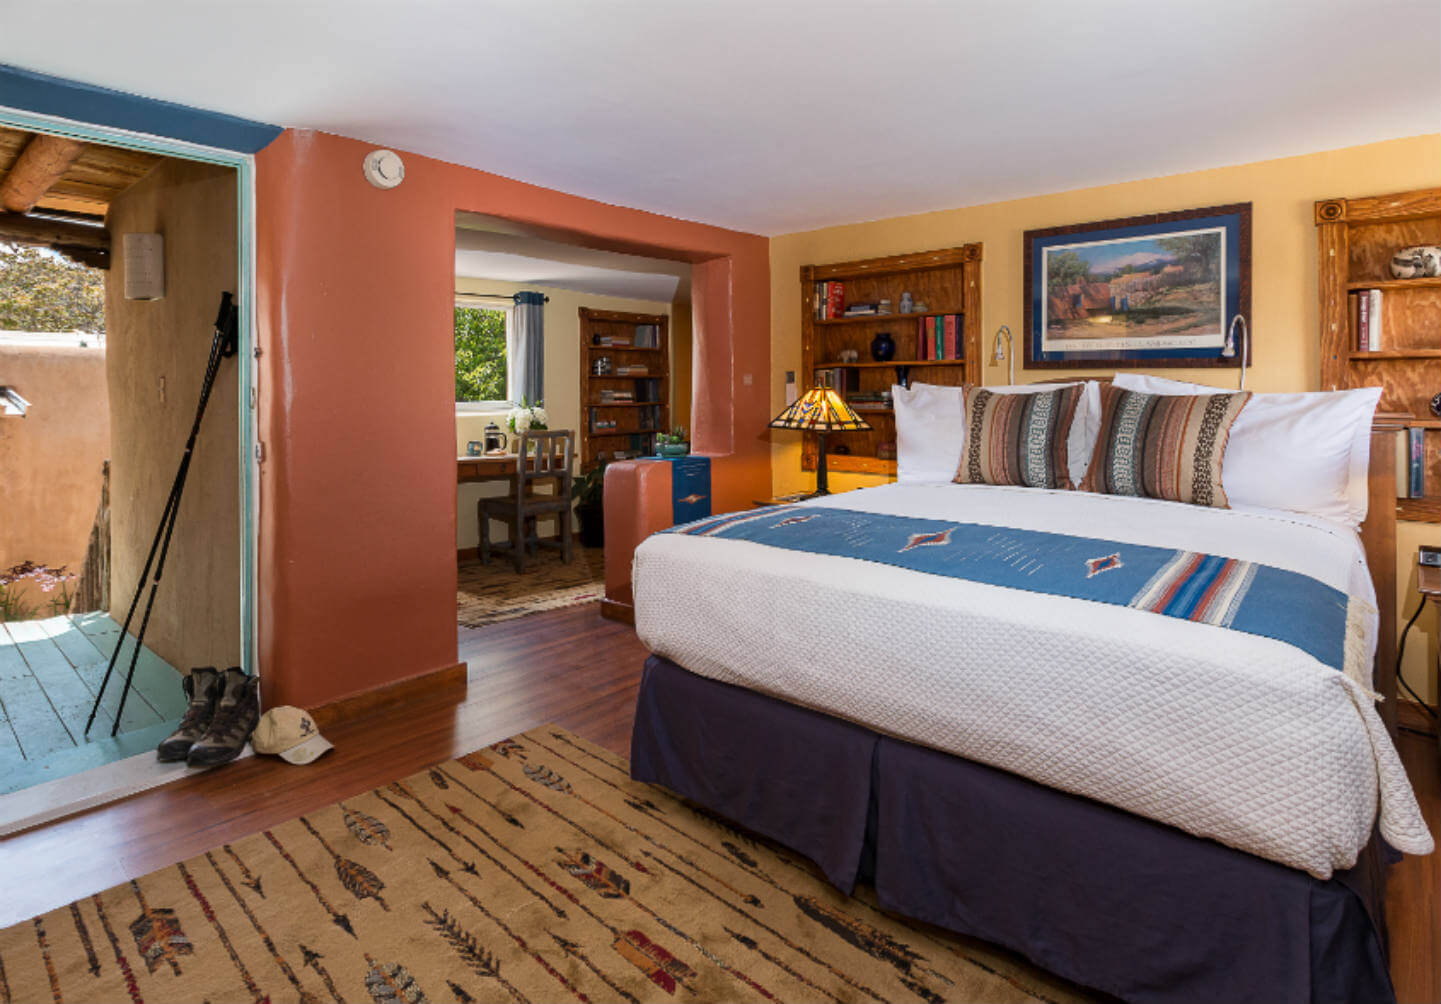 A view of a the DH Lawrence guest room at Turquoise Bear